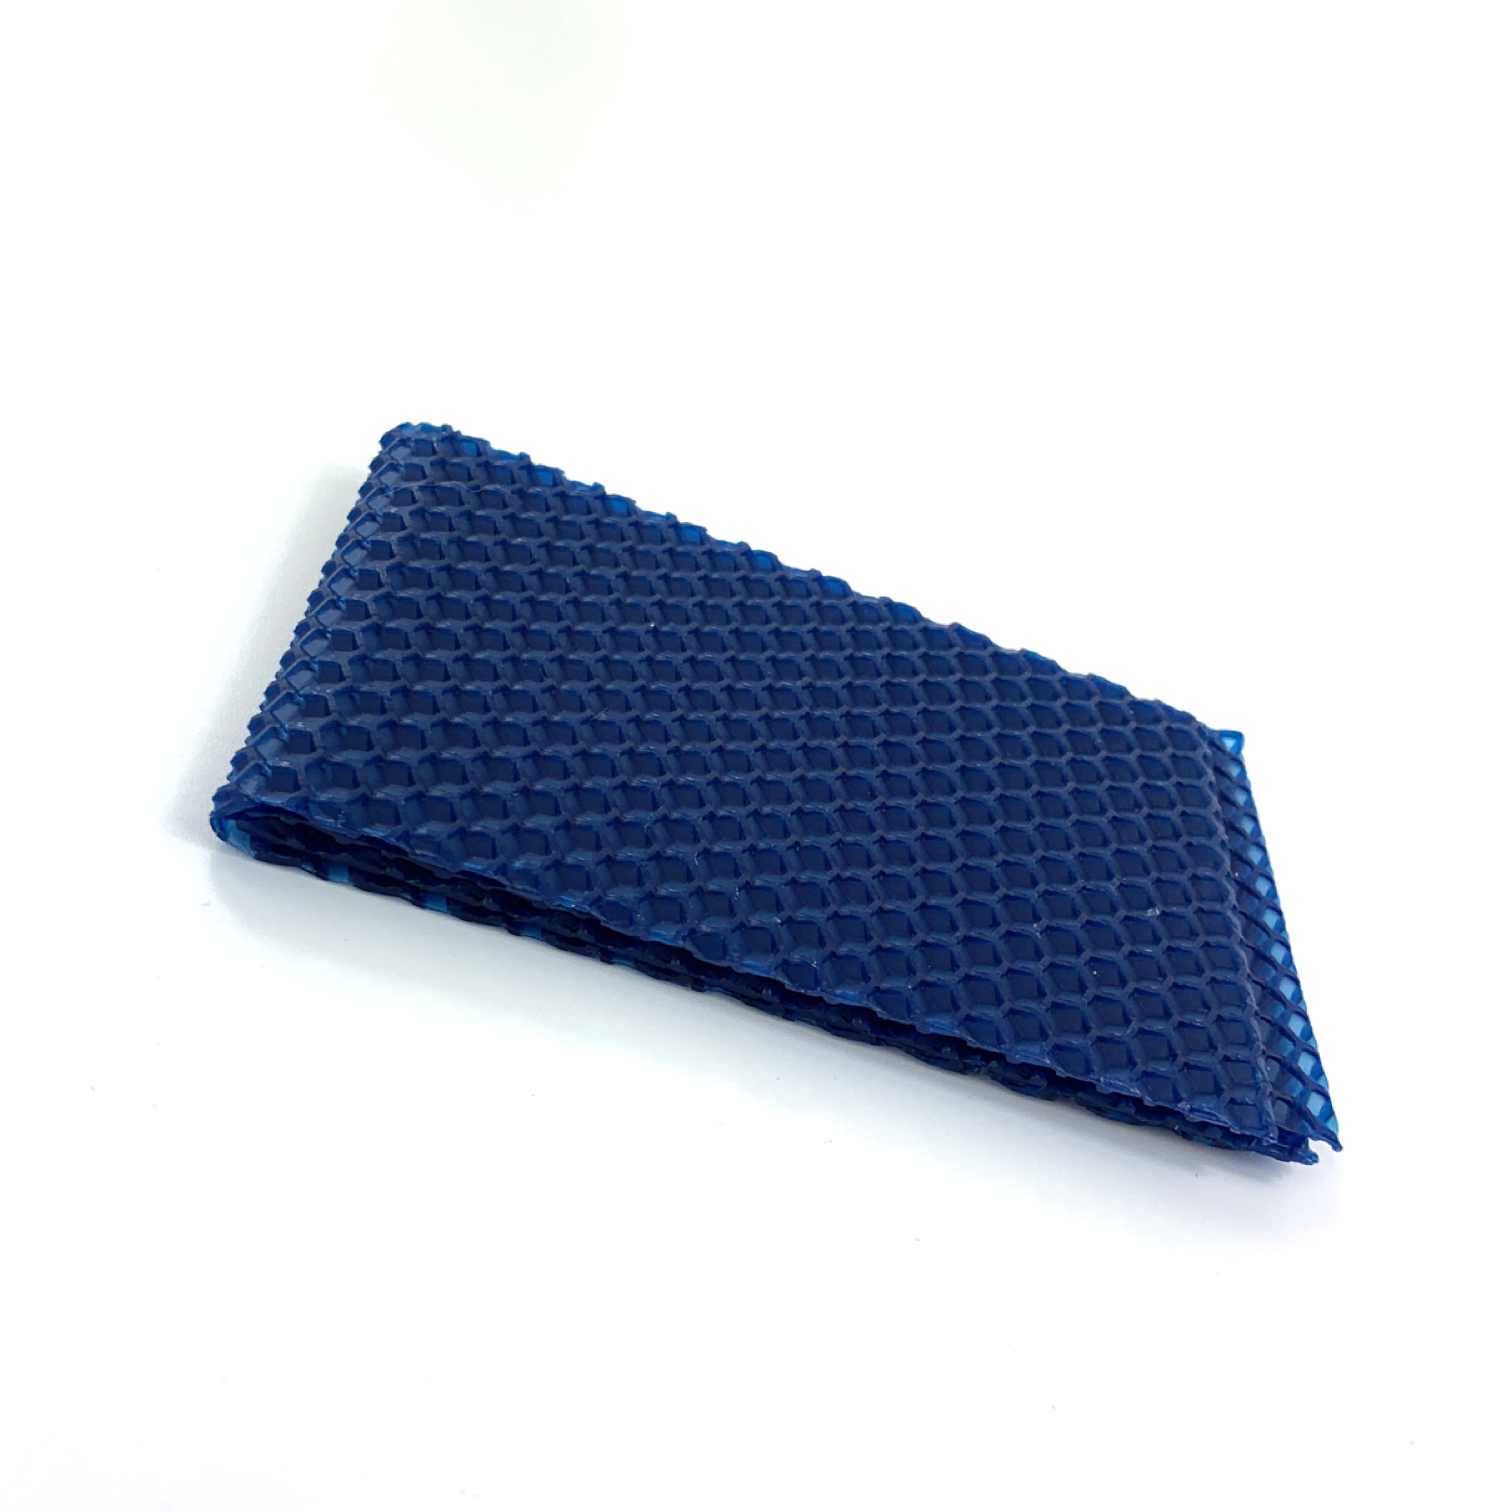 Beeswax Sheets- Dark Blue Beeswax Sheets 22g